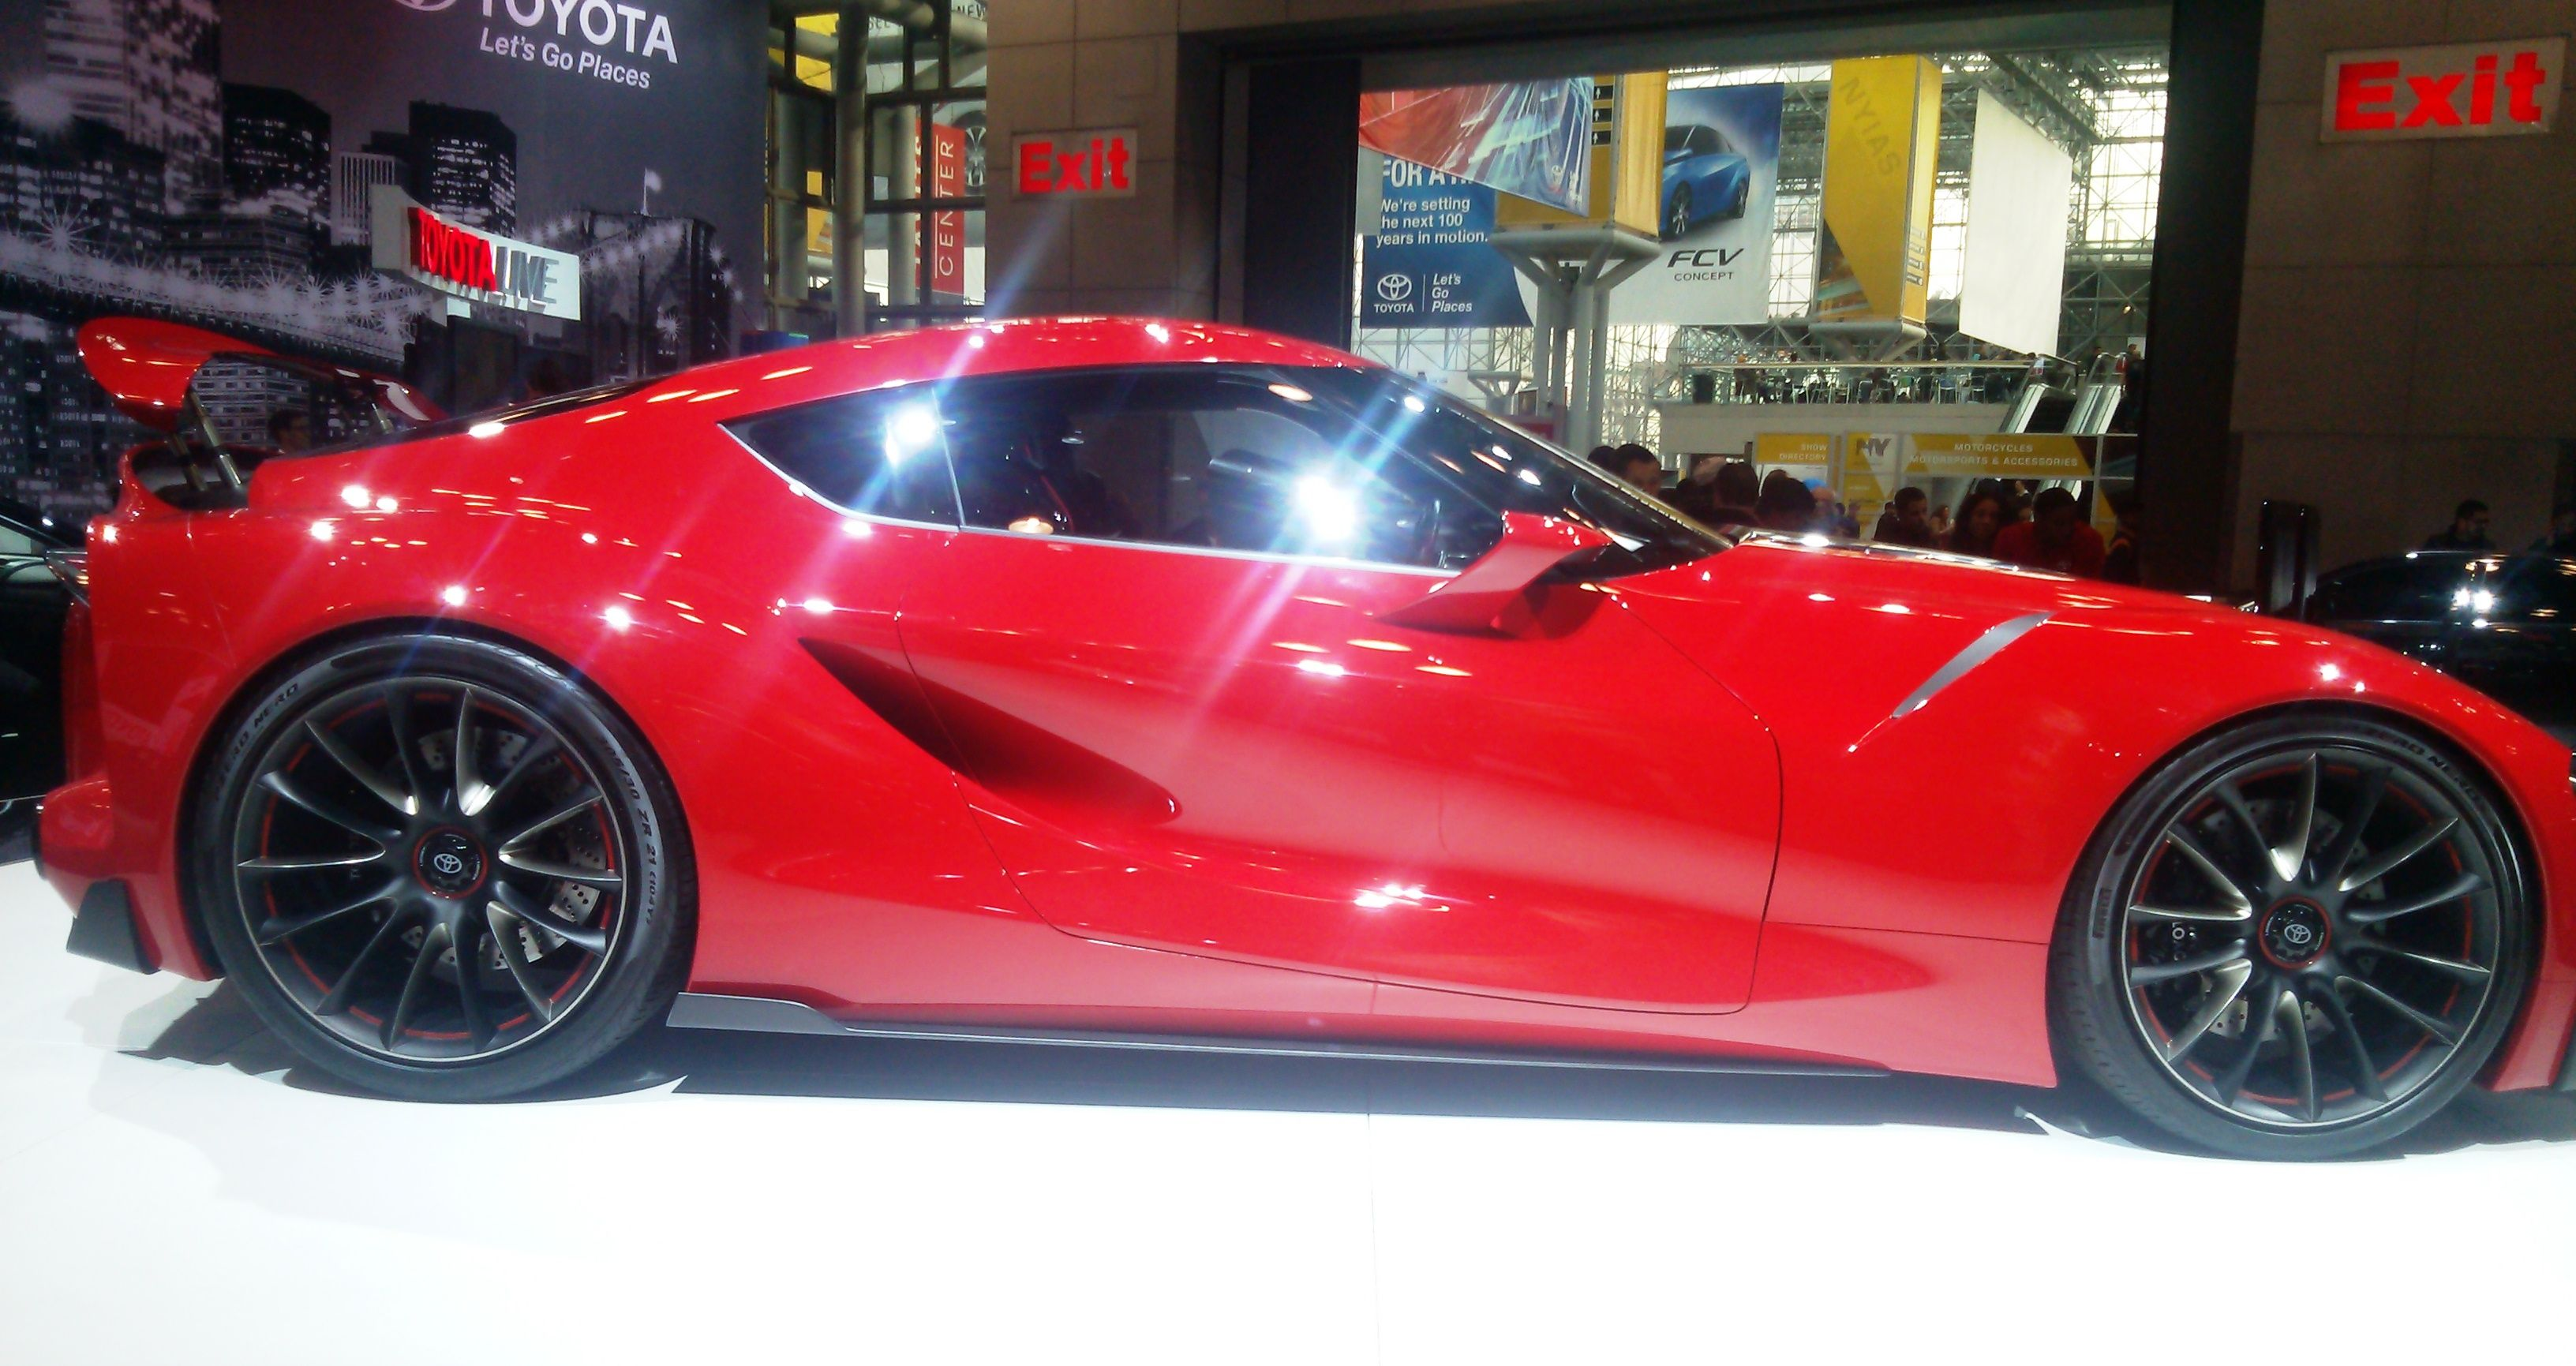 Toyota FT1 Auto, New york, Sports car